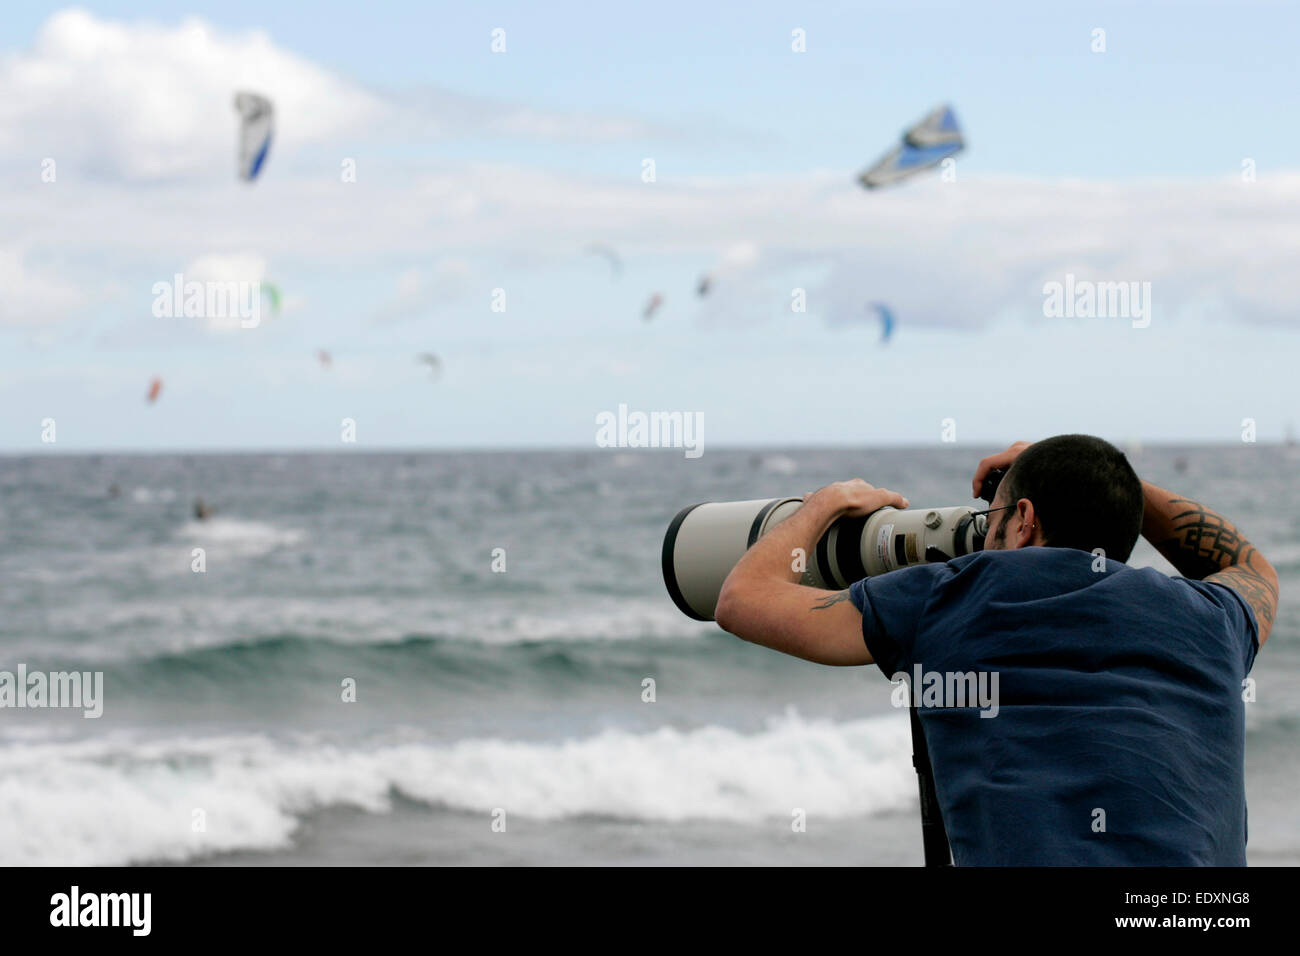 photographer wearing glasses uses a long Canon telephoto lens at a sports event - Stock Image